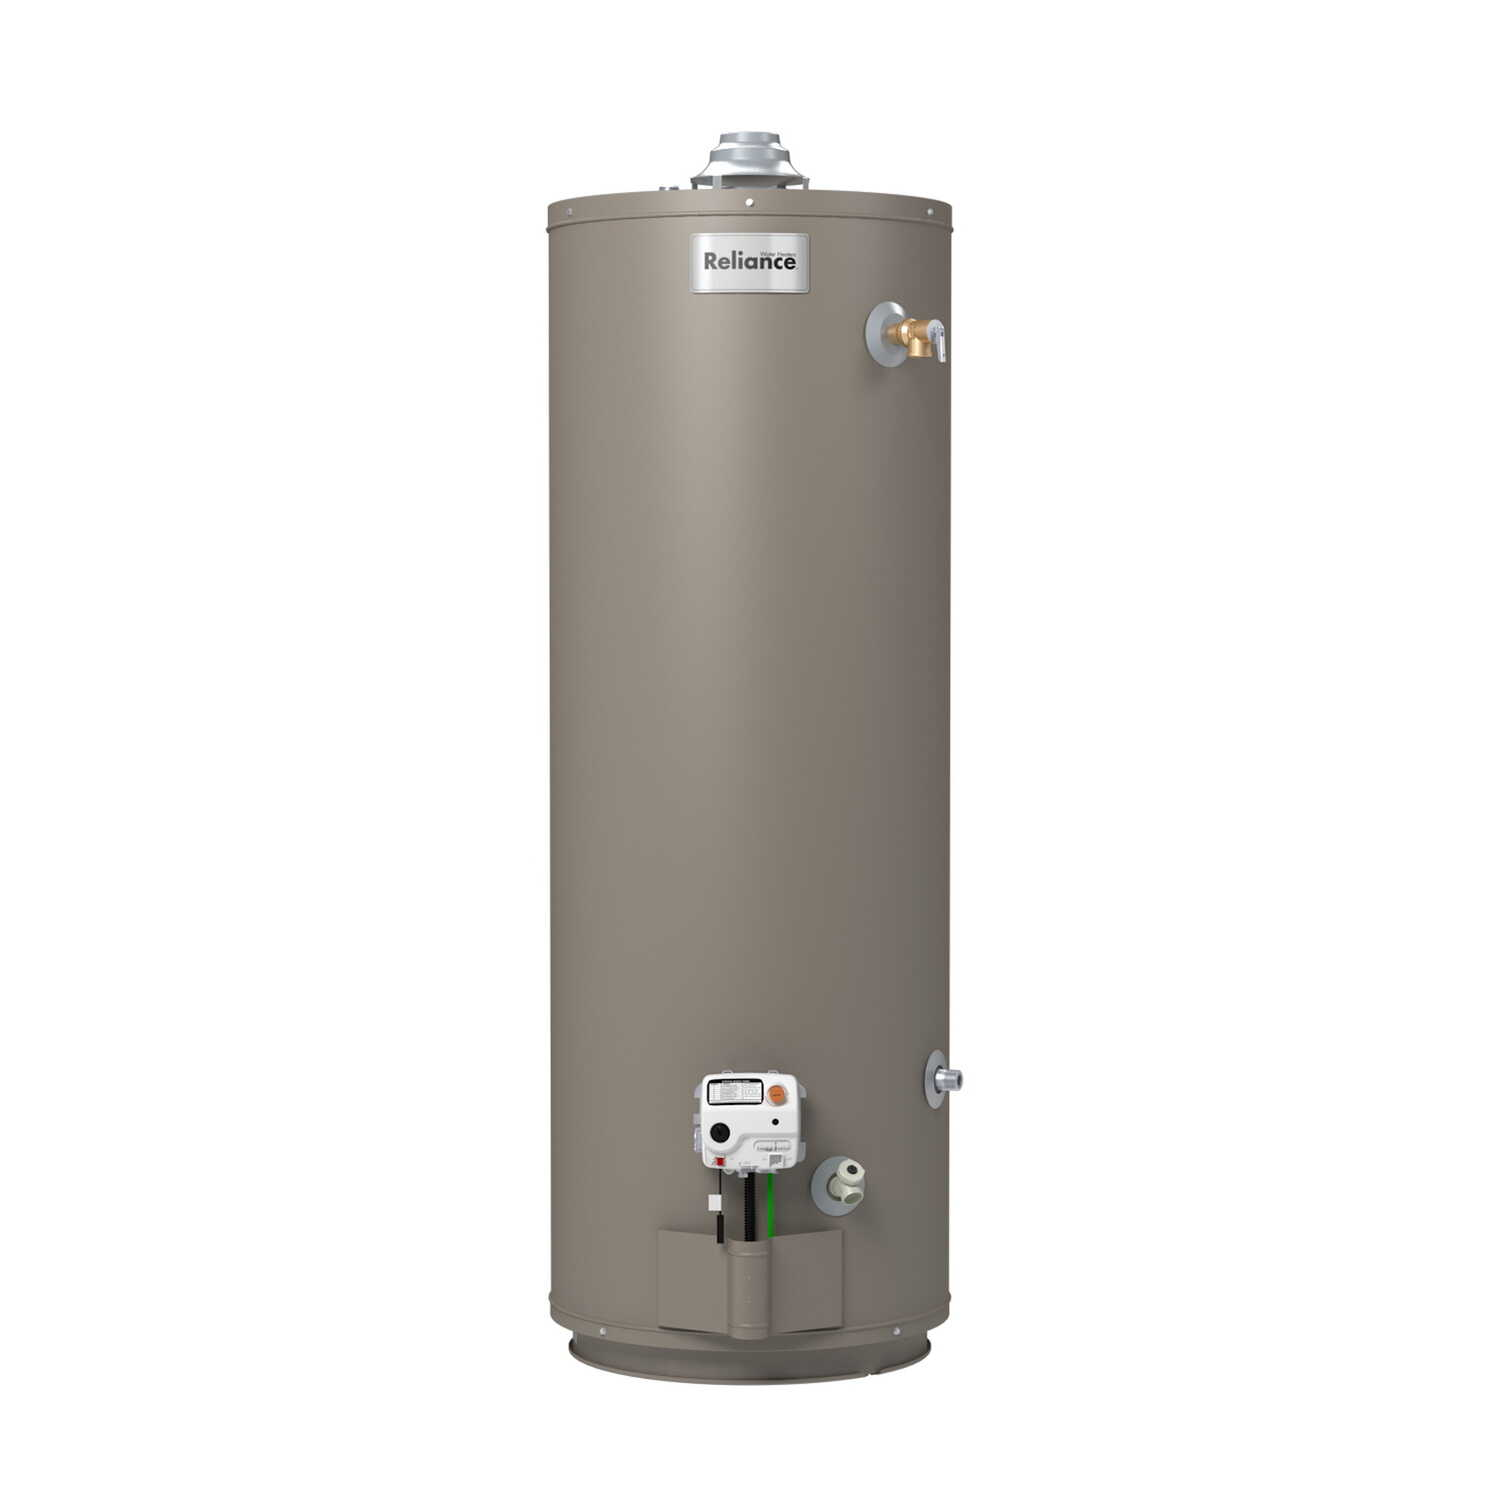 Reliance  Natural Gas/Propane  Mobile Home Water Heater  61-3/4 in. H x 20 in. L x 20 in. W 40 gal.